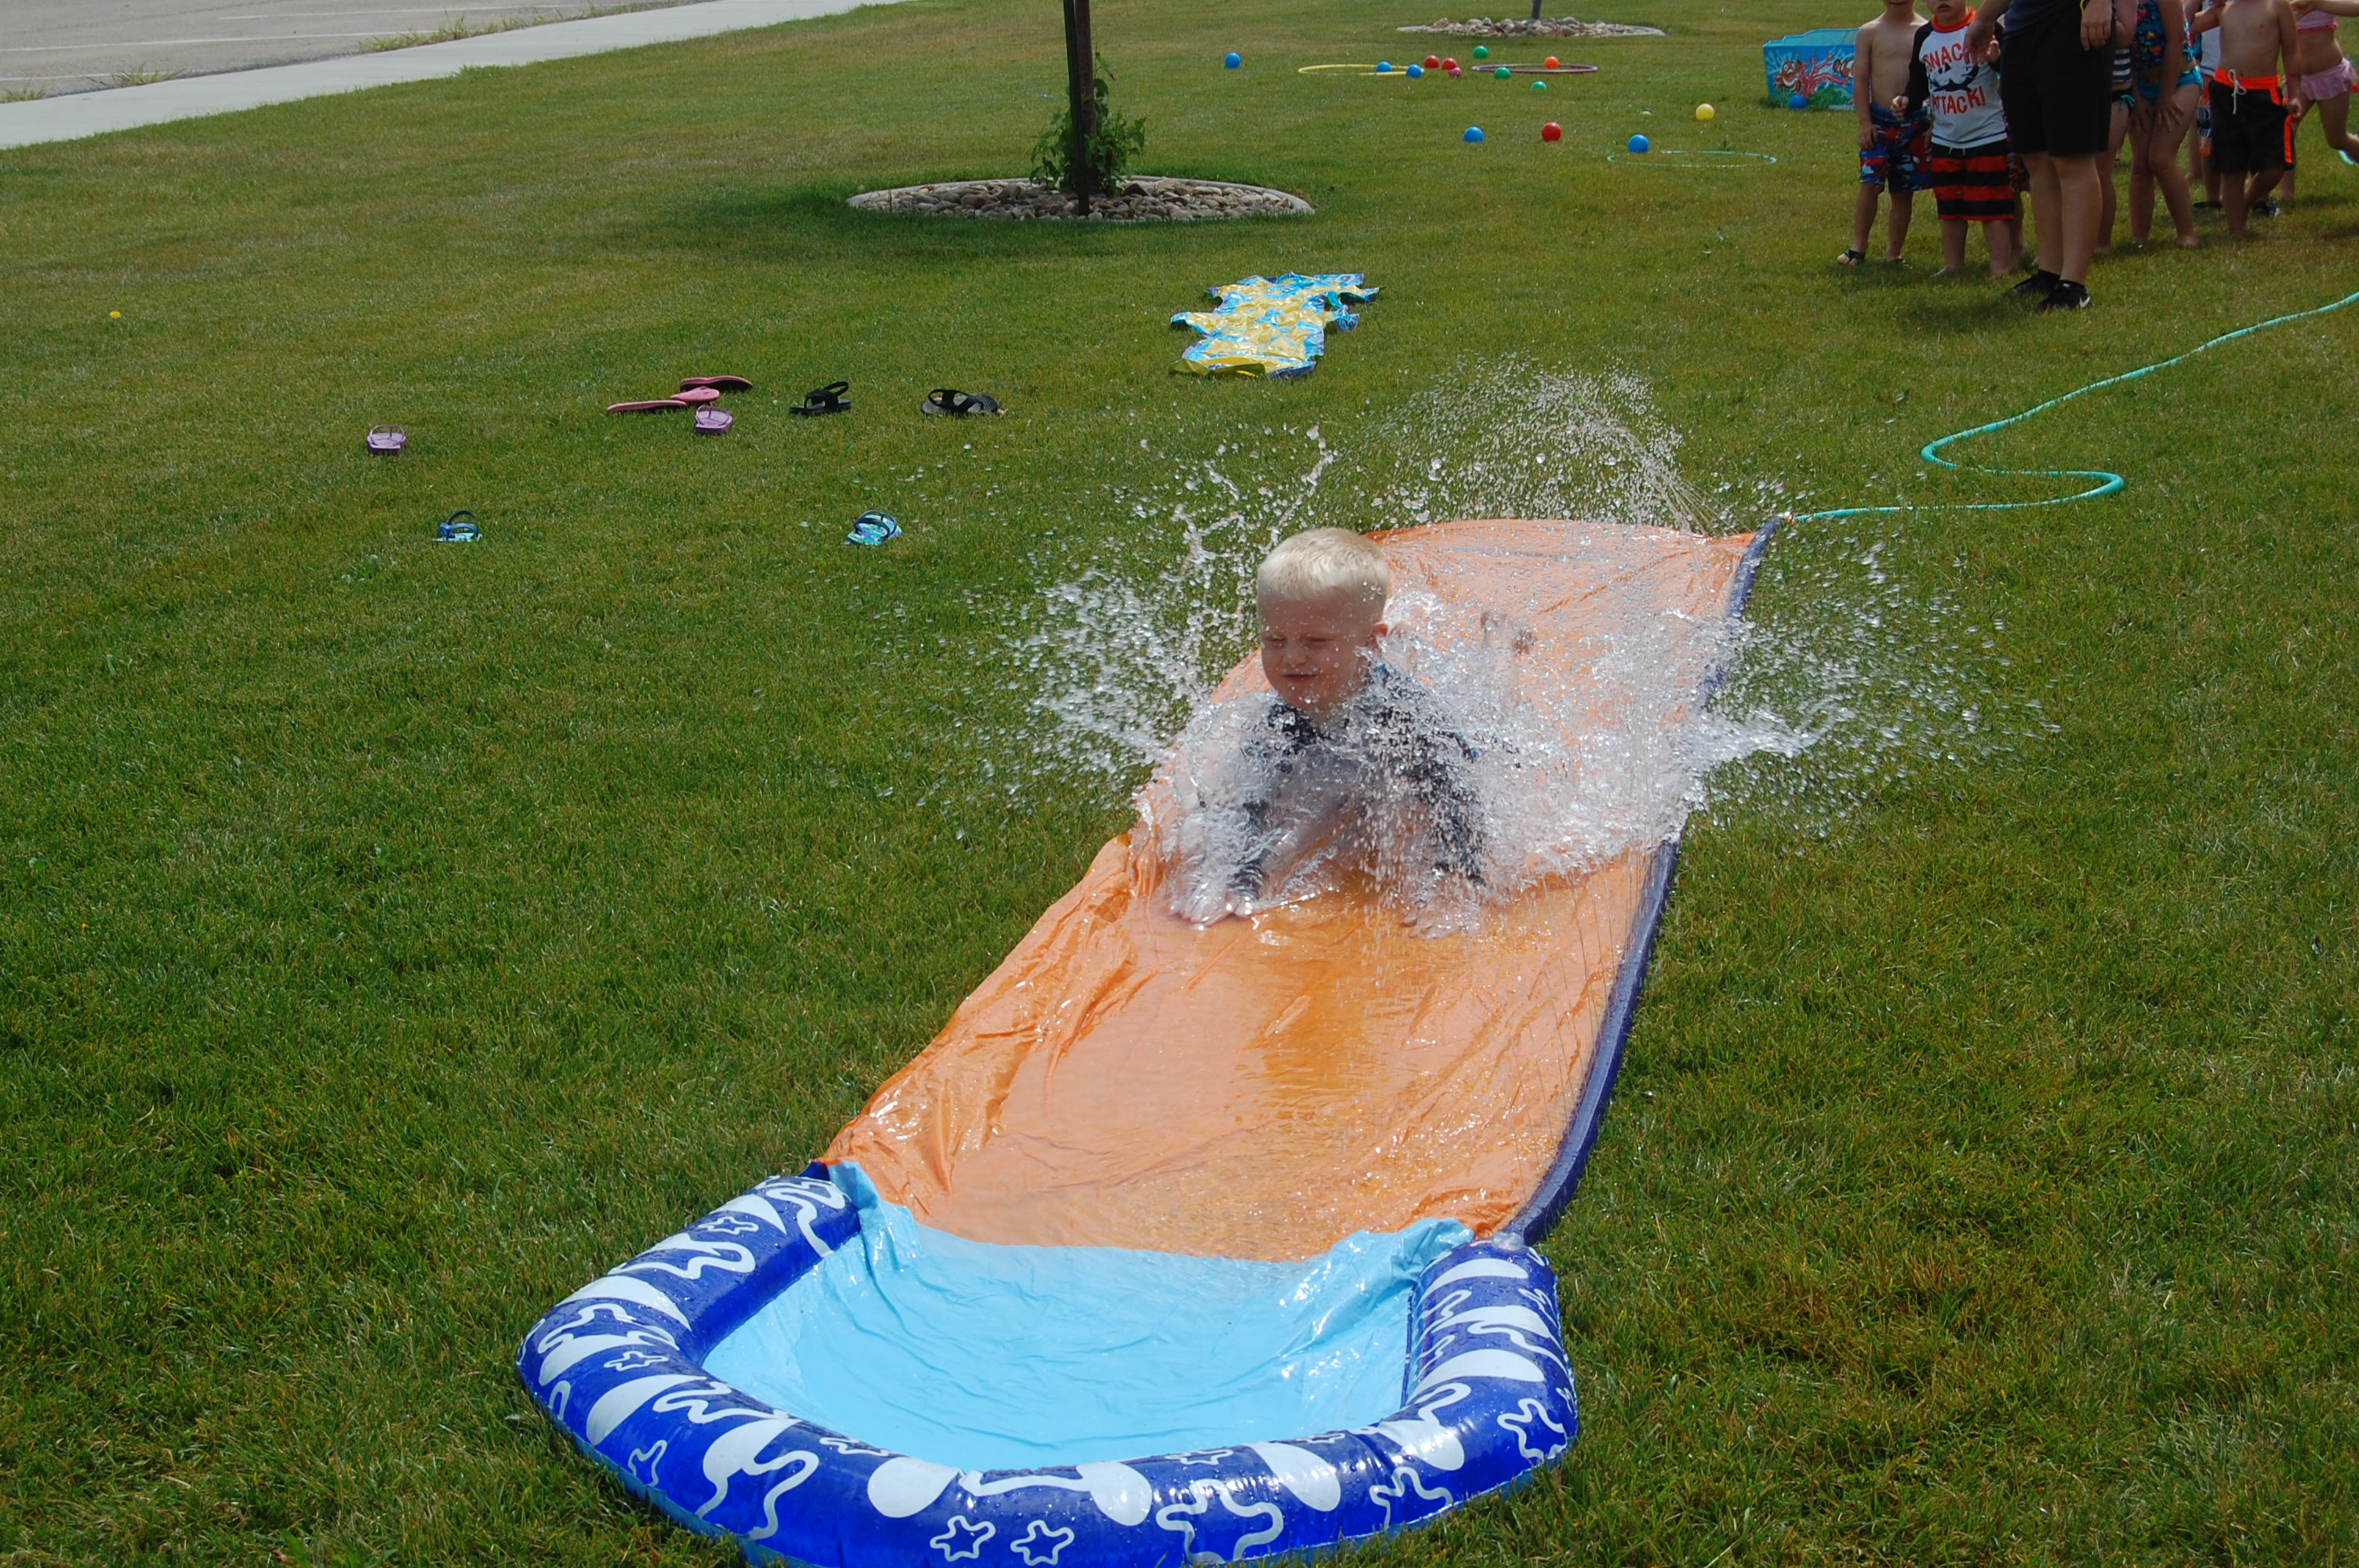 Conrad on the slip n slide